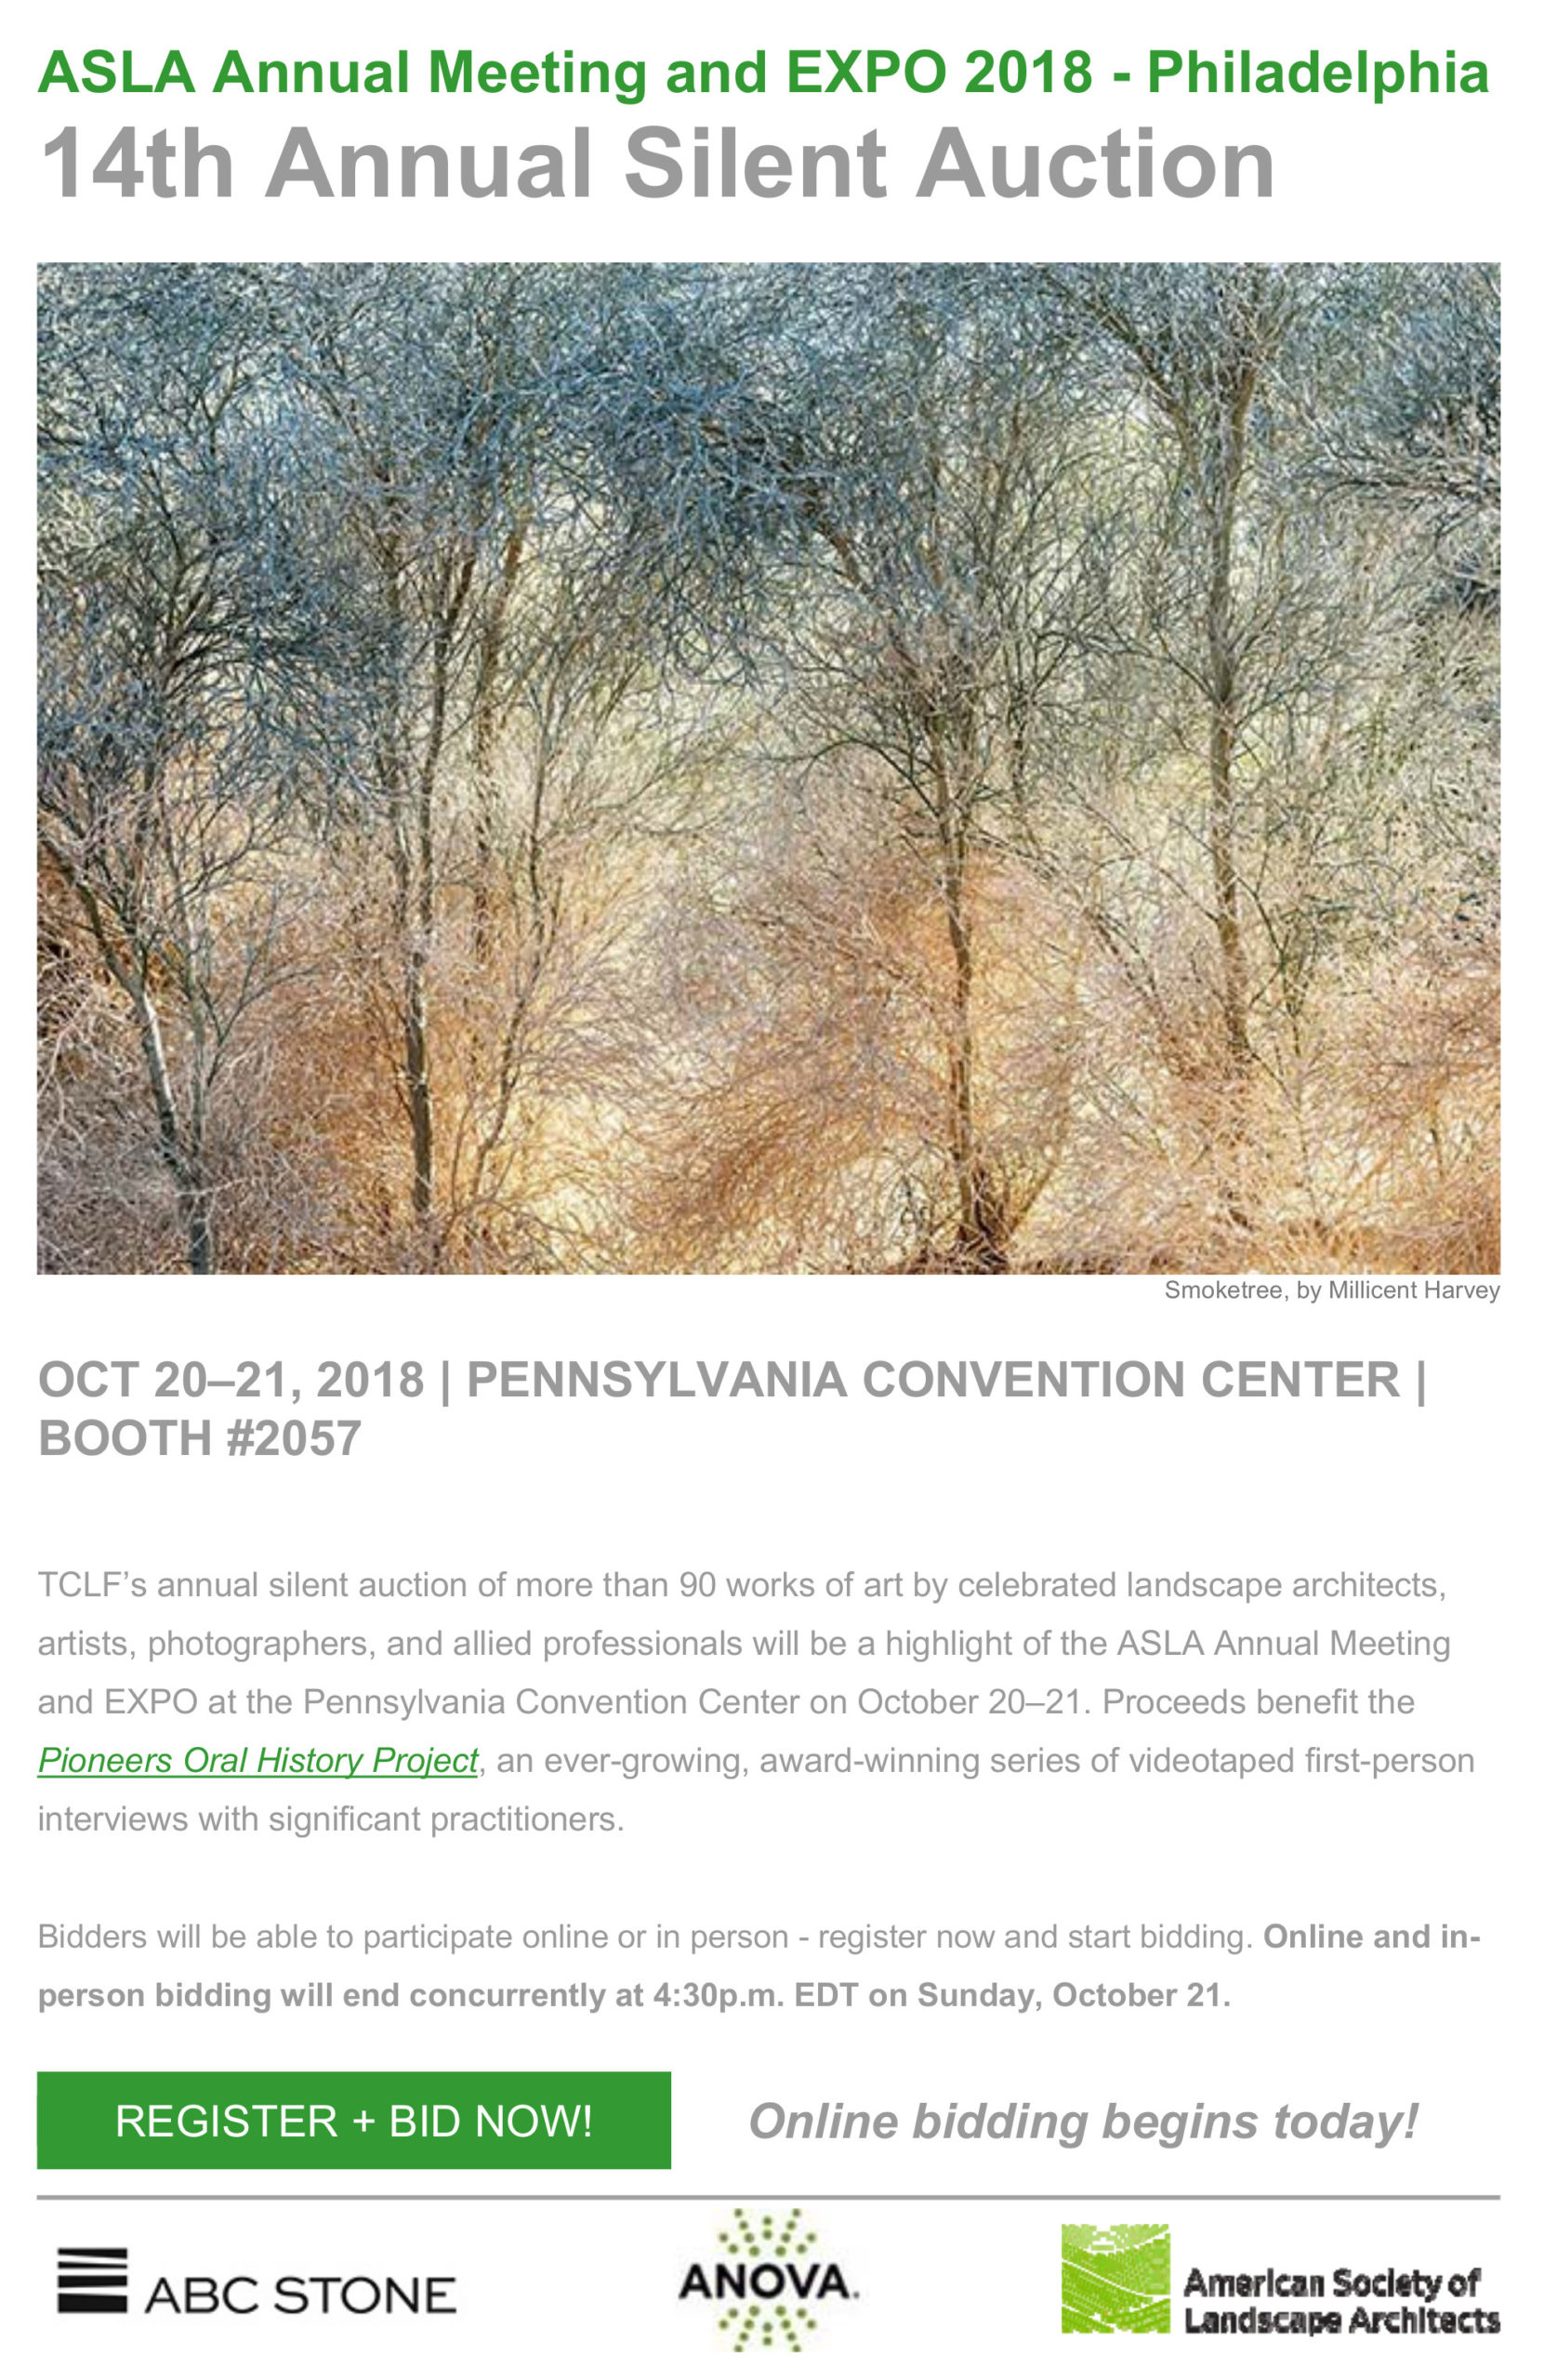 ABC Stone is proud to be a season sponsor of The Cultural Landscape Foundation, and a lead sponsor of TCLF's 14th Annual Silent Auction at the ASLA EXPO, Oct 20-21, 2018